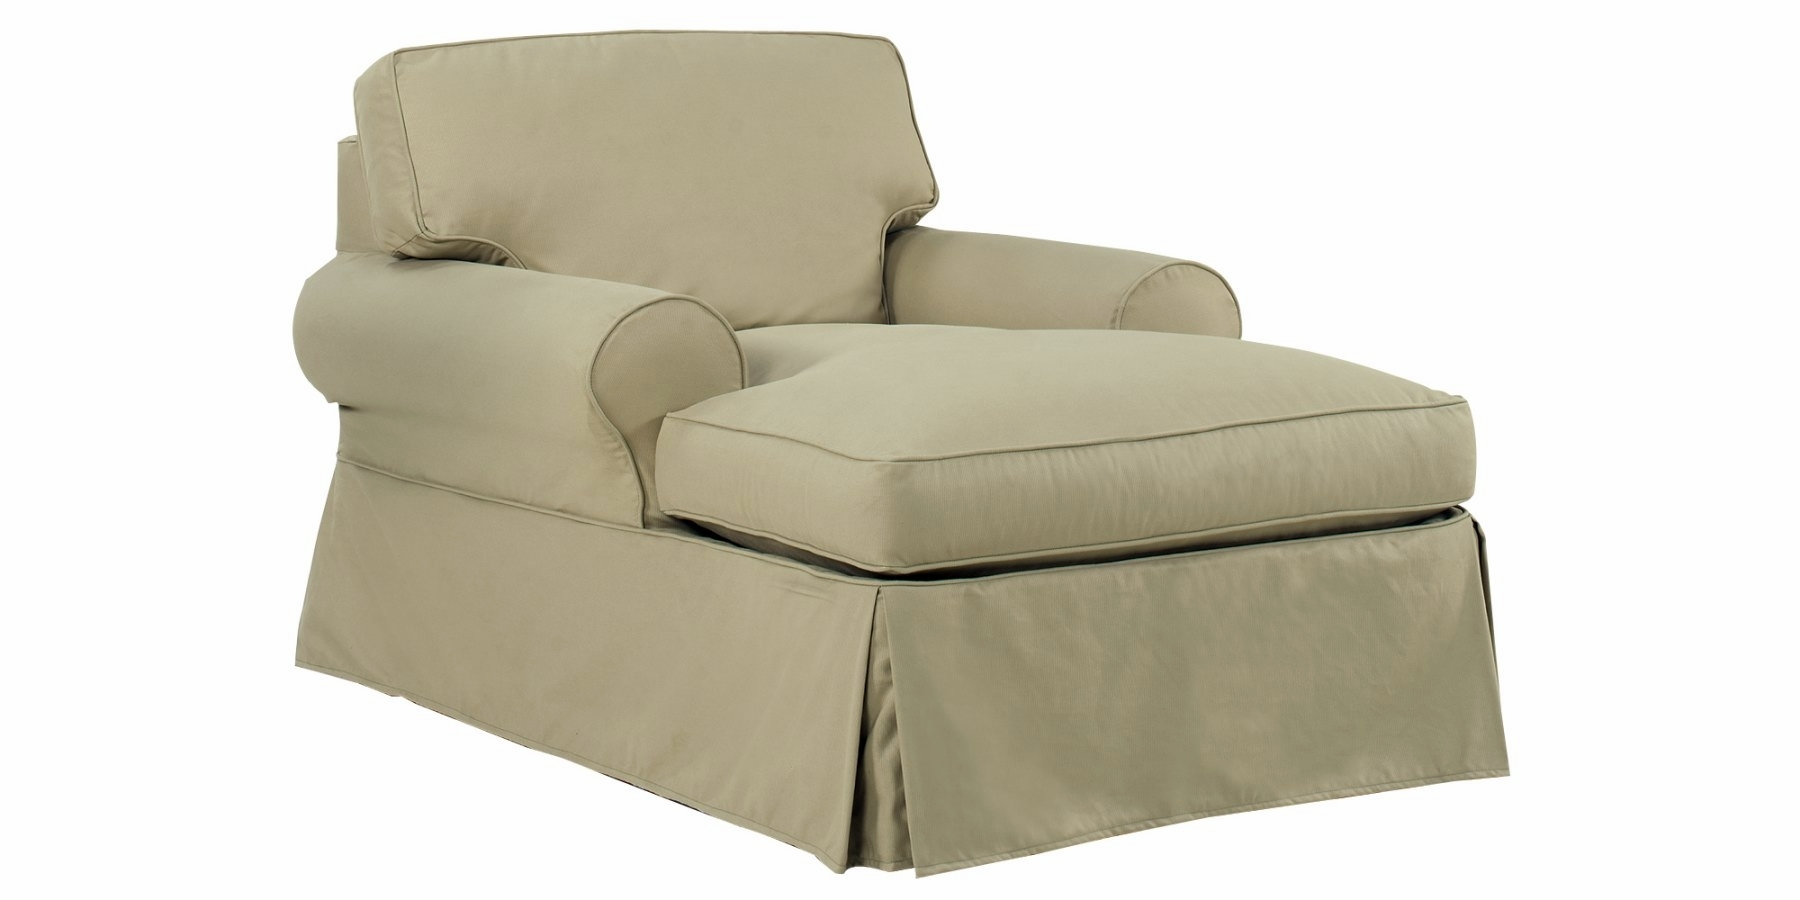 Sofa With Chaise Lounge Slipcover Hereo Sofa In Chaise Sofa Covers (#11 of 12)